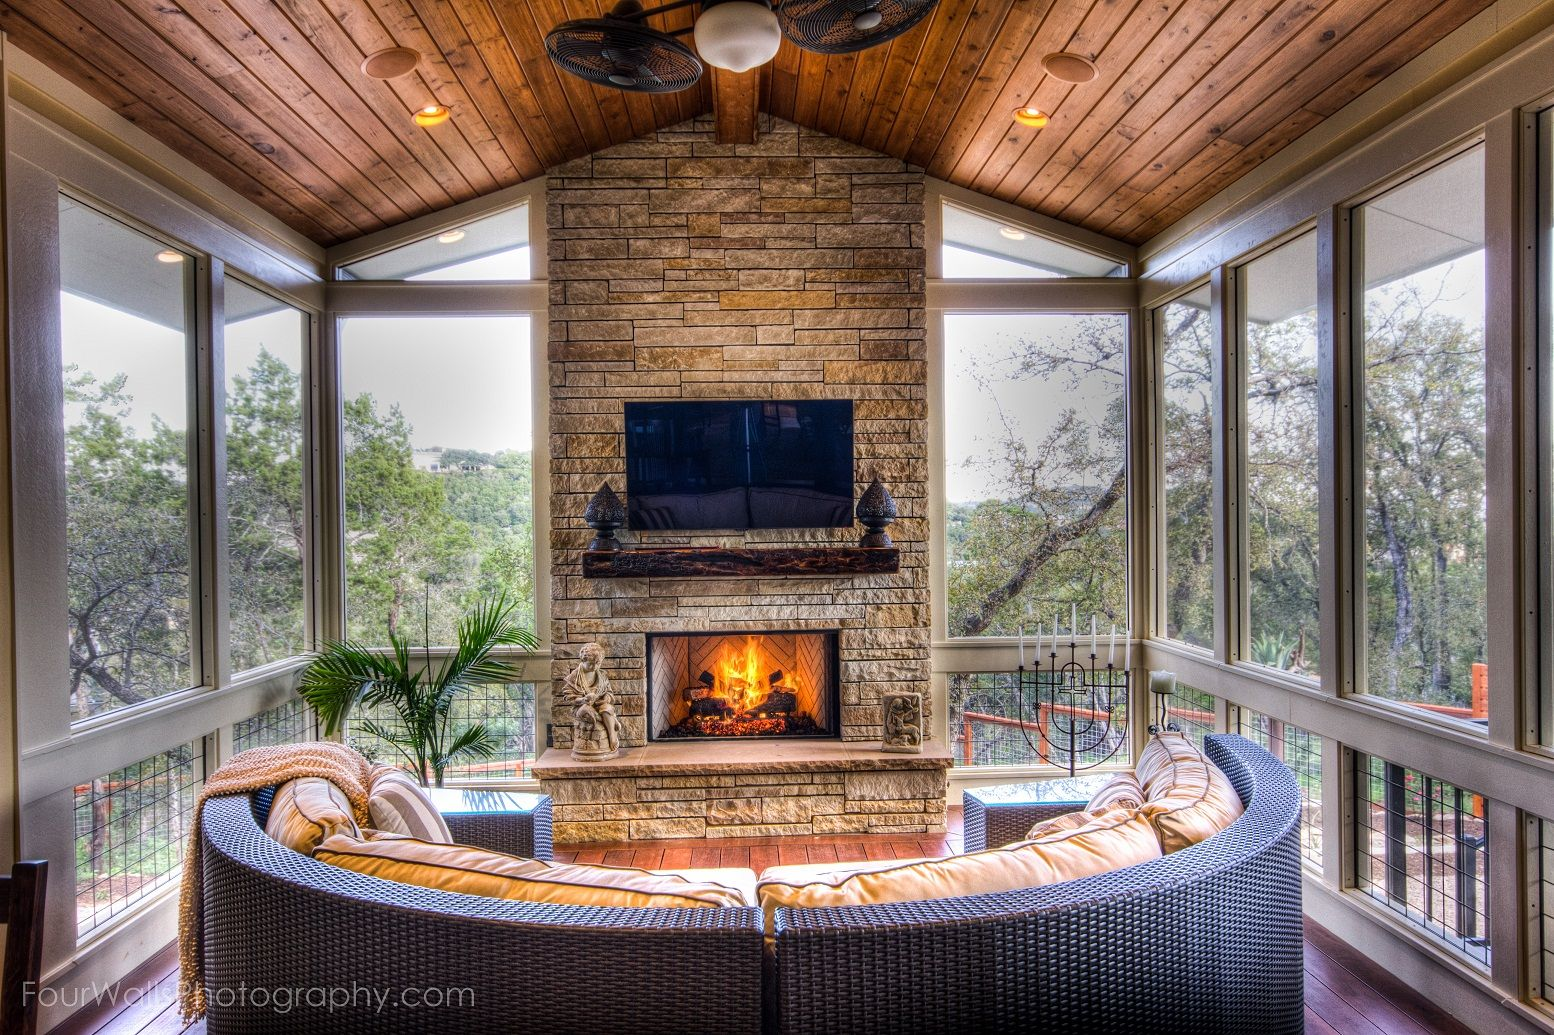 Pin By Cheryl Bryson On Deck And Screened Porch Ideas Porch Fireplace House With Porch Porch Design